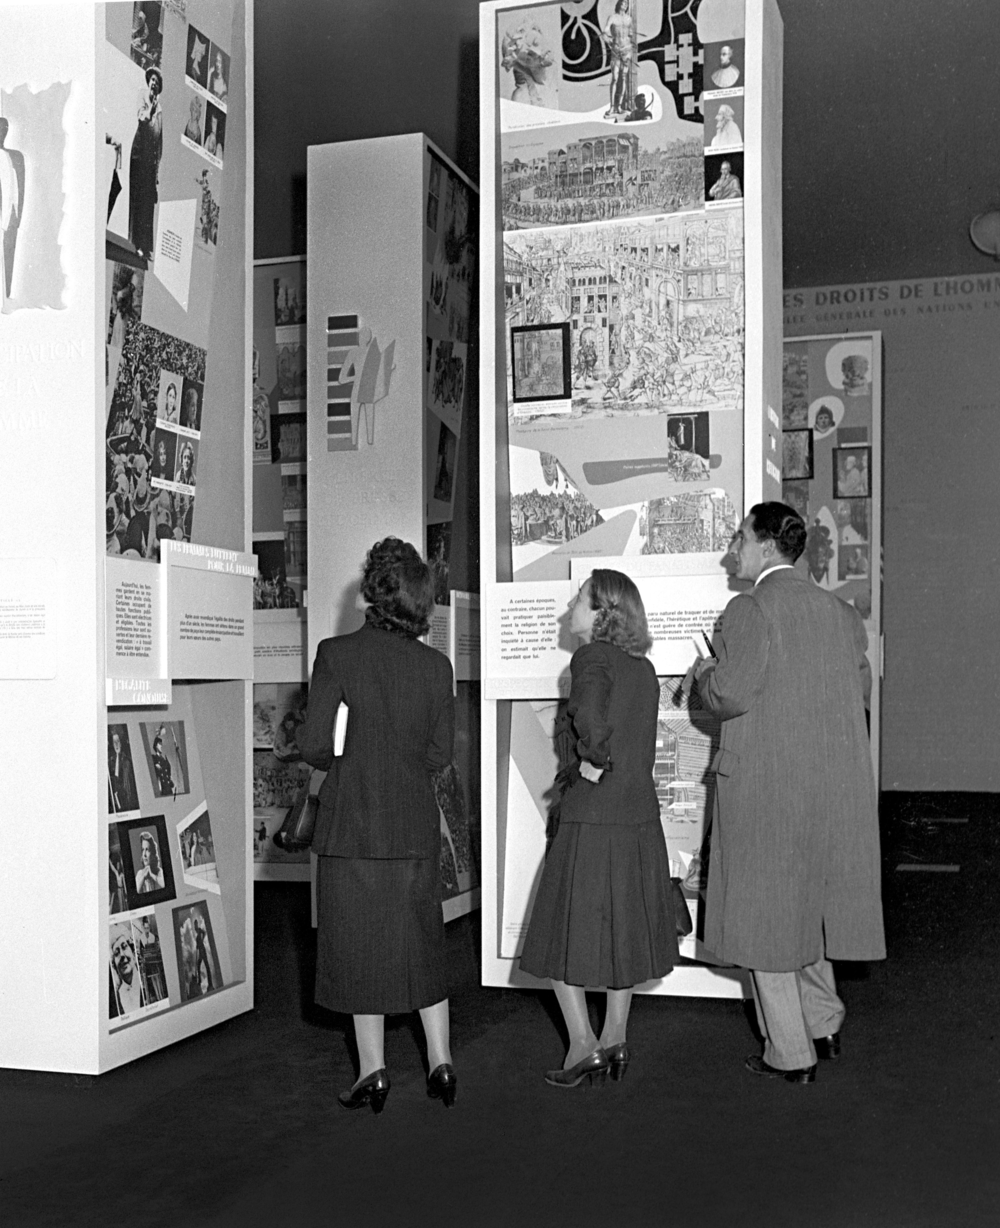 Installations at The Human Rights Exhibition, Musée Galliéra, Paris, 1949.